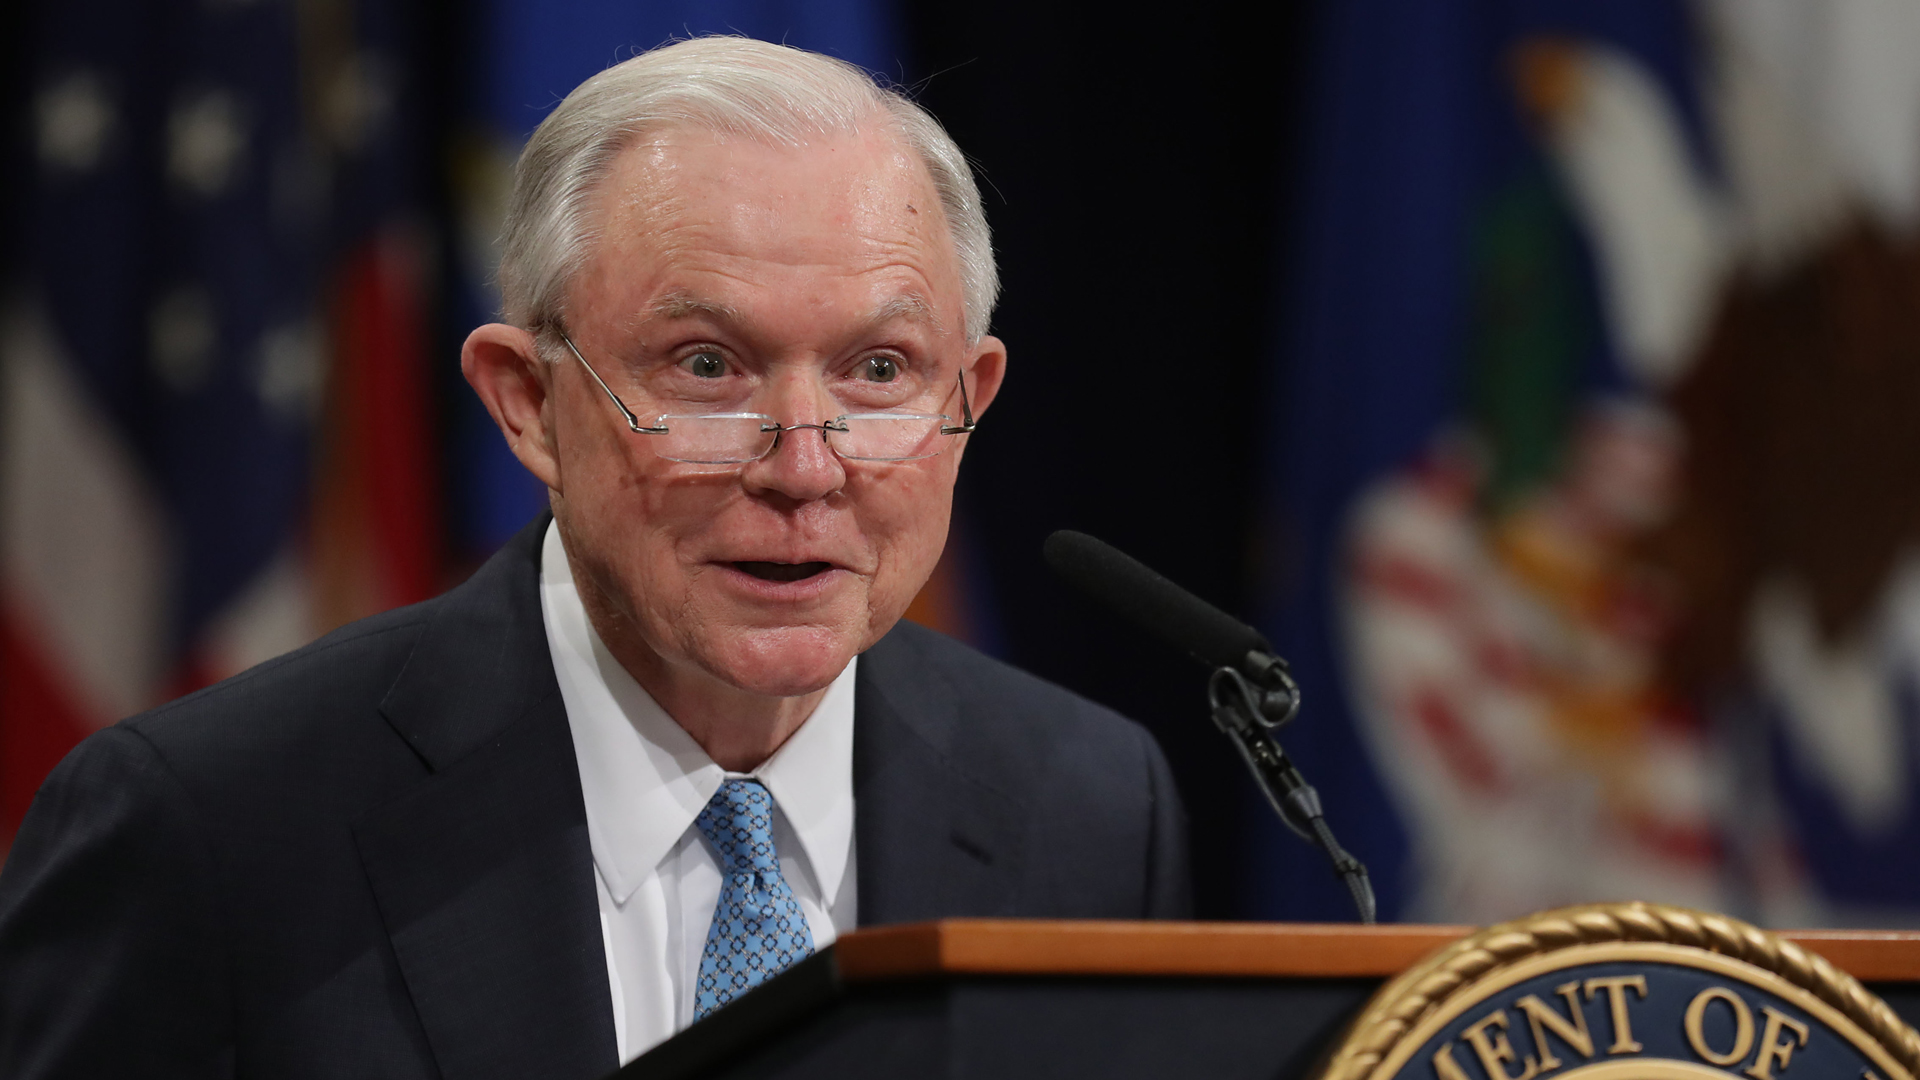 Former U.S. Attorney General Jeff Sessions delivers remarks during a farewell ceremony for Deputy Attorney General Rod Rosenstein on May 9, 2019, in Washington, DC. (Chip Somodevilla/Getty Images)